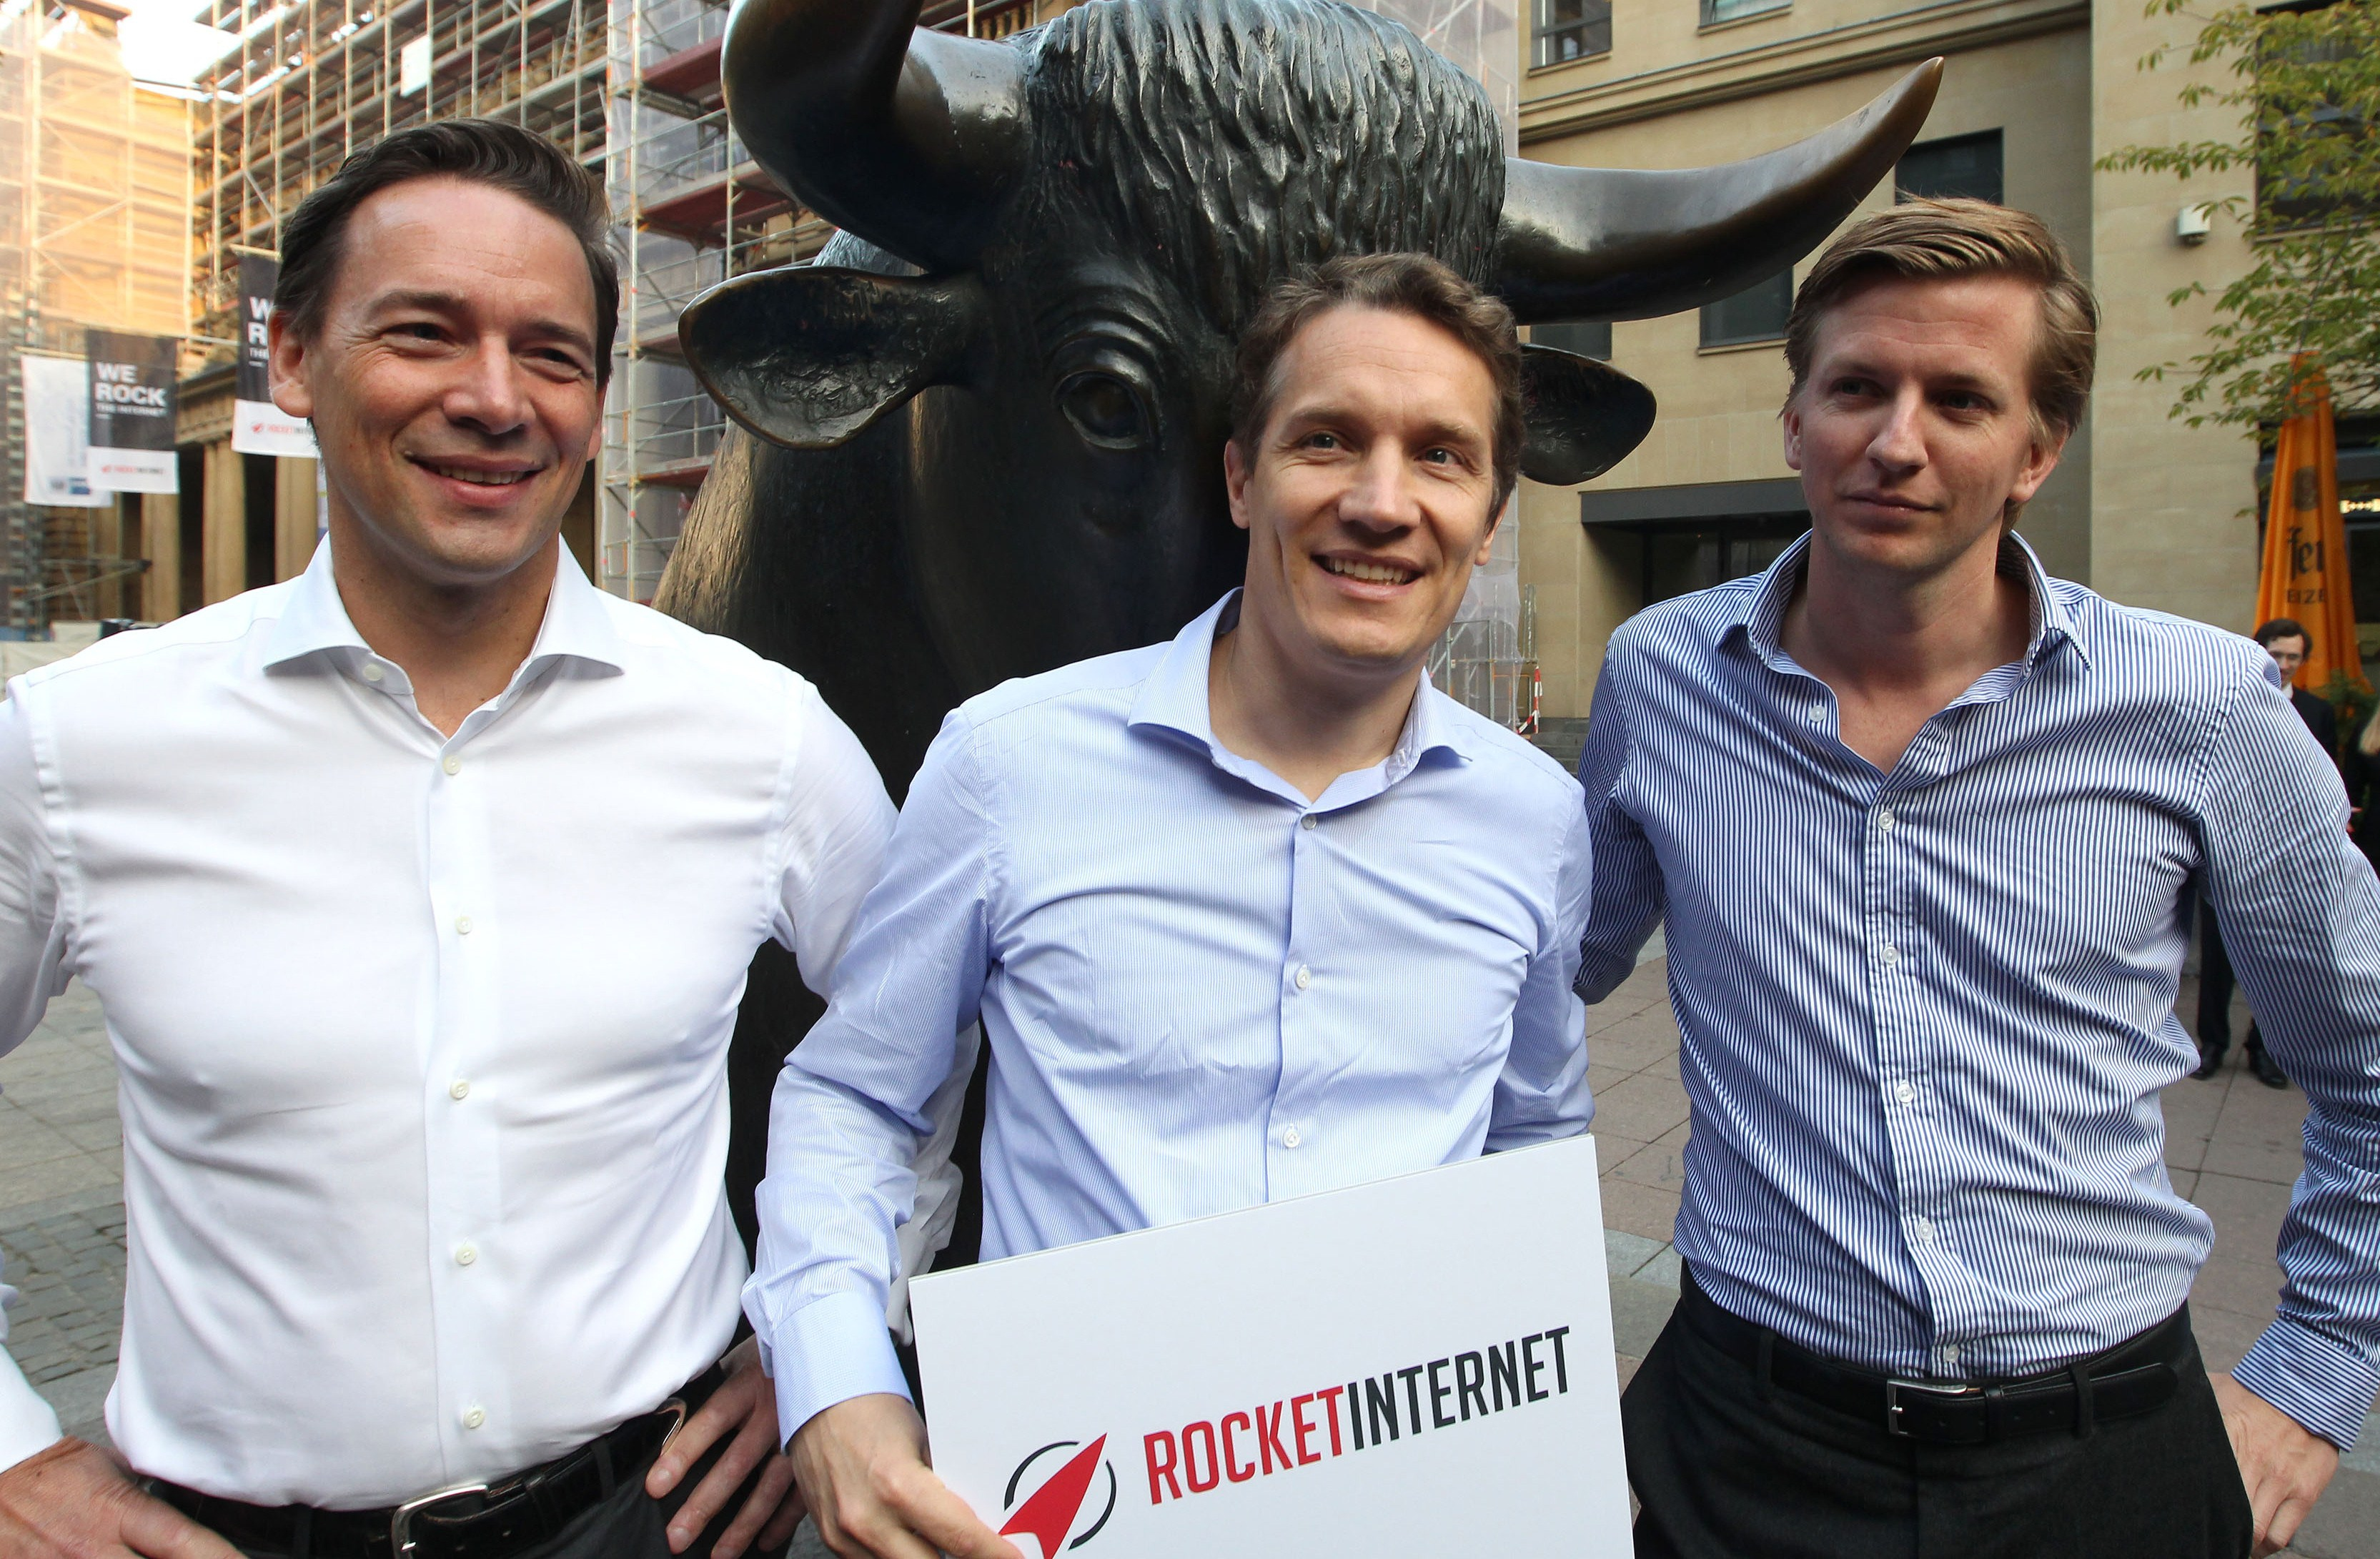 Rocket Internet Kicks Off IPO on Frankfurt Stock Exchange